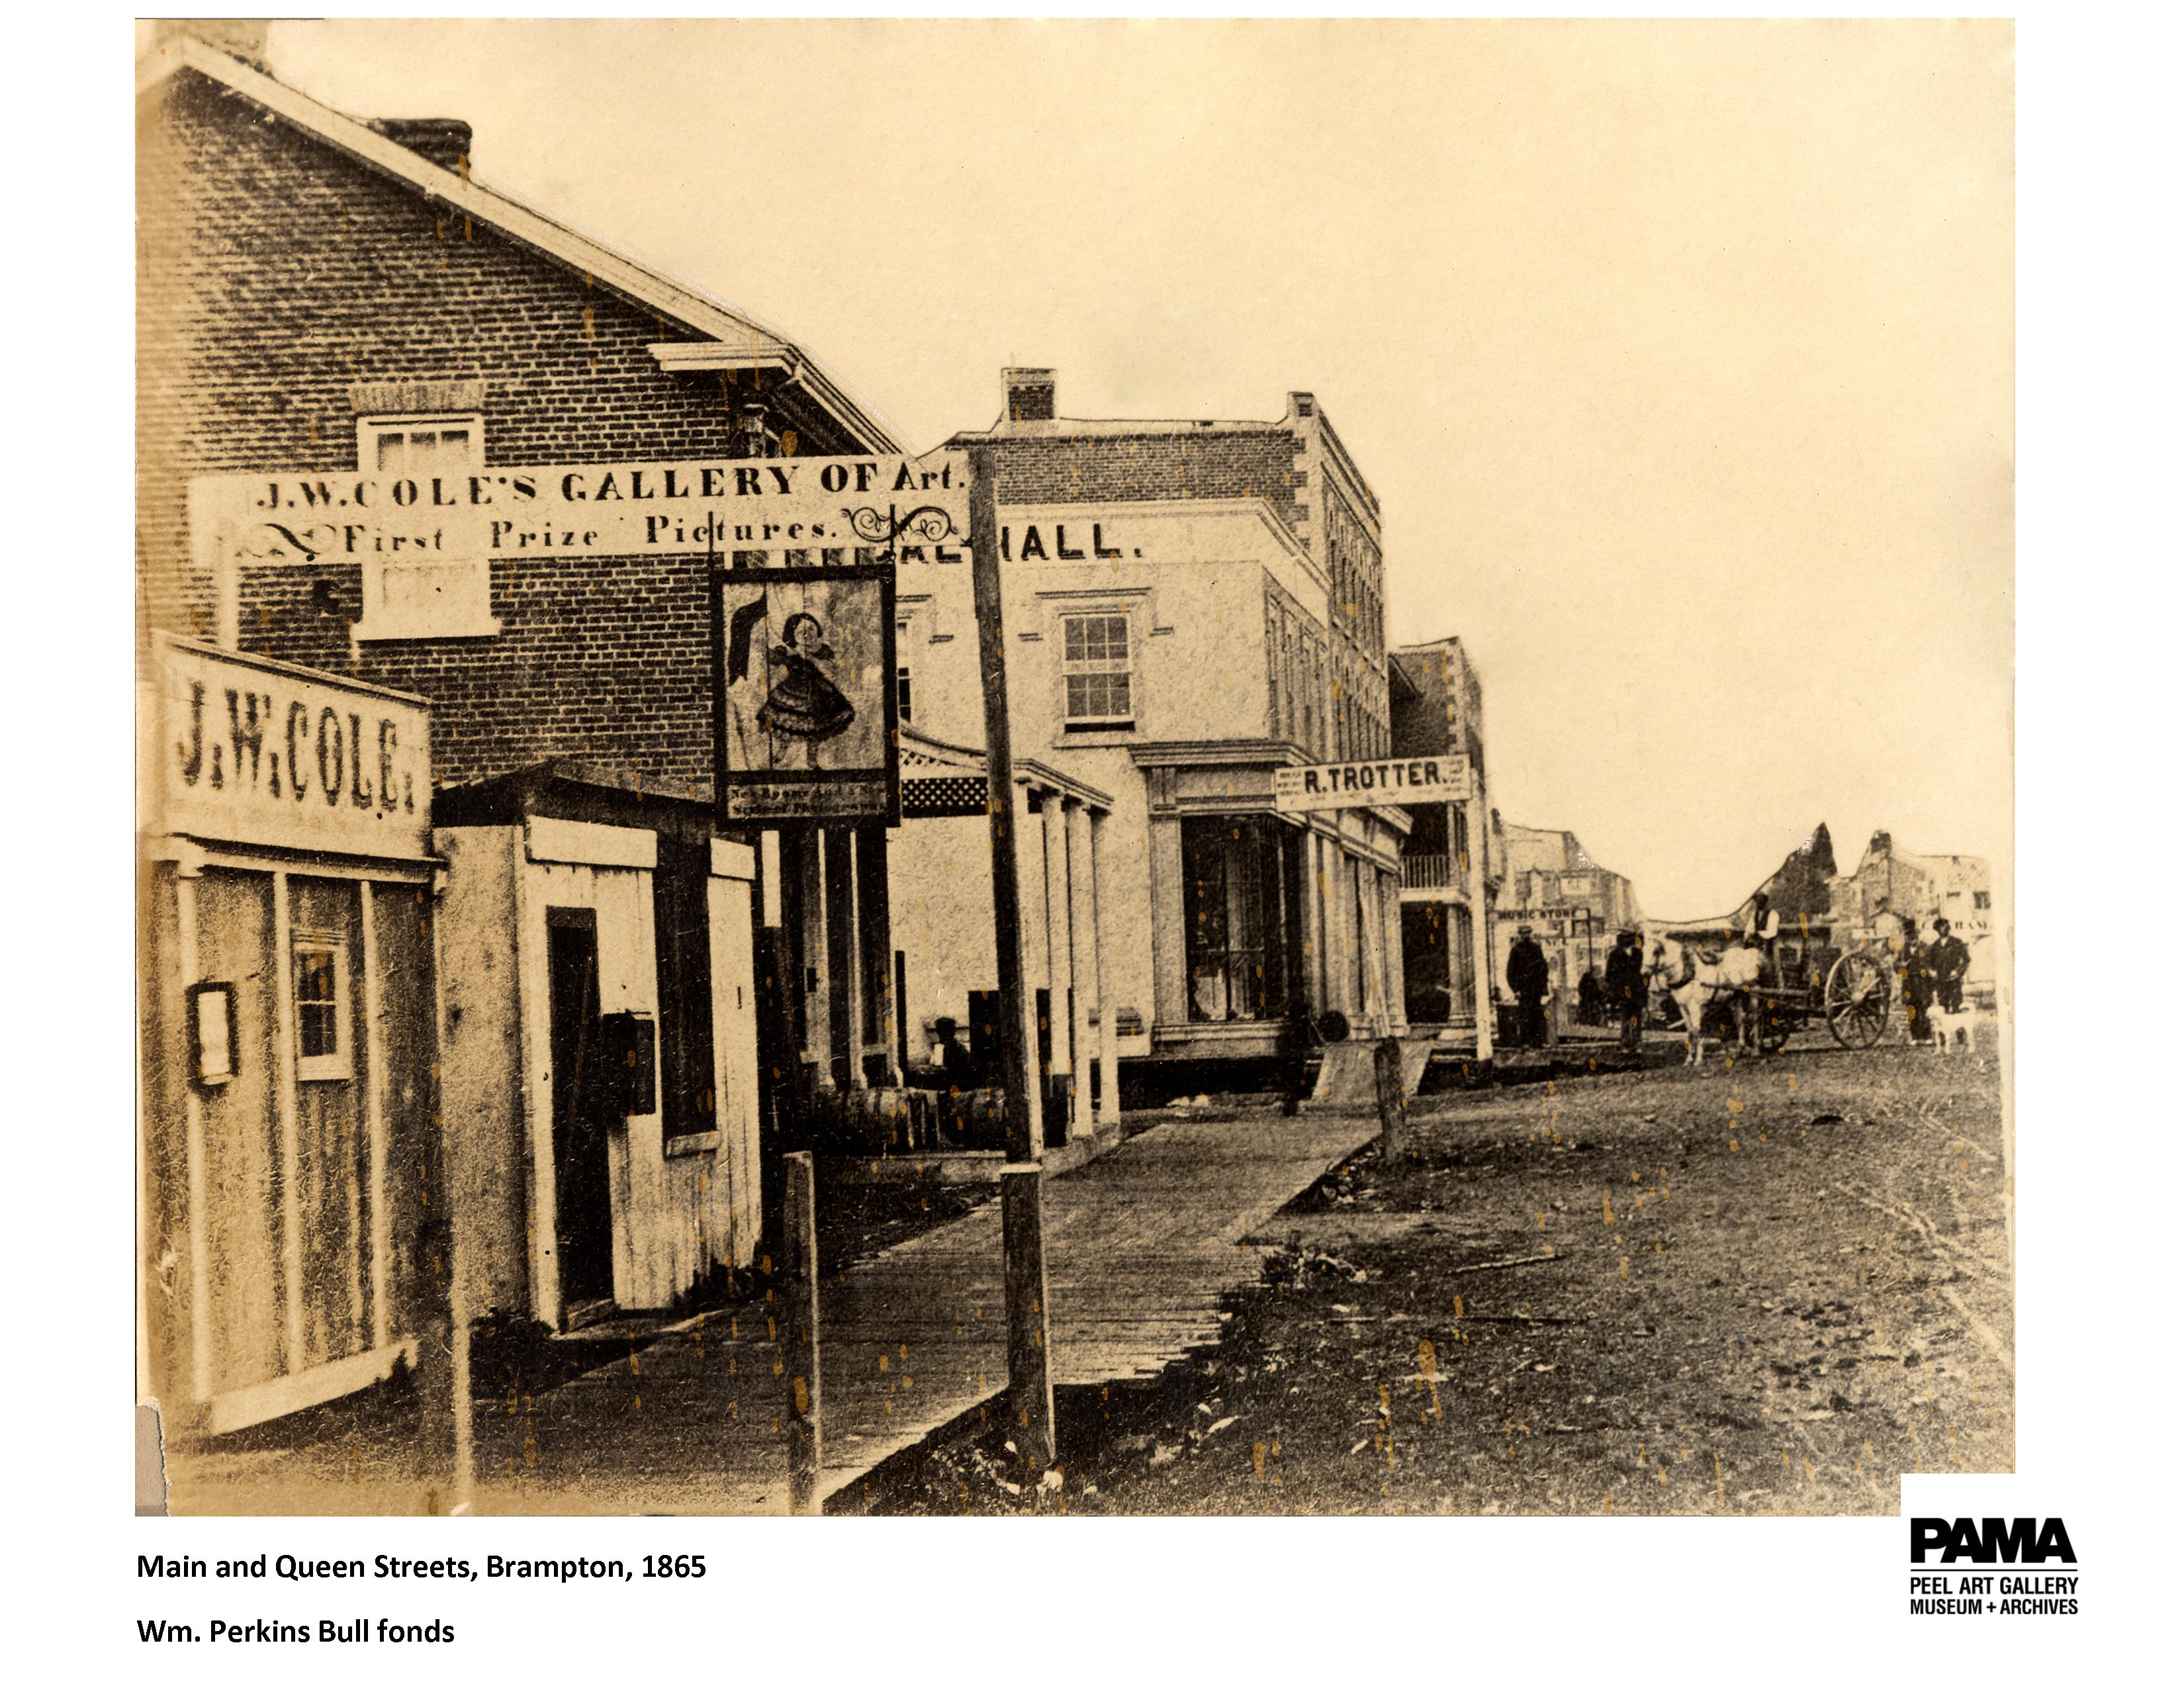 Main and Queen, Brampton, 1865 (WP Bull fonds)